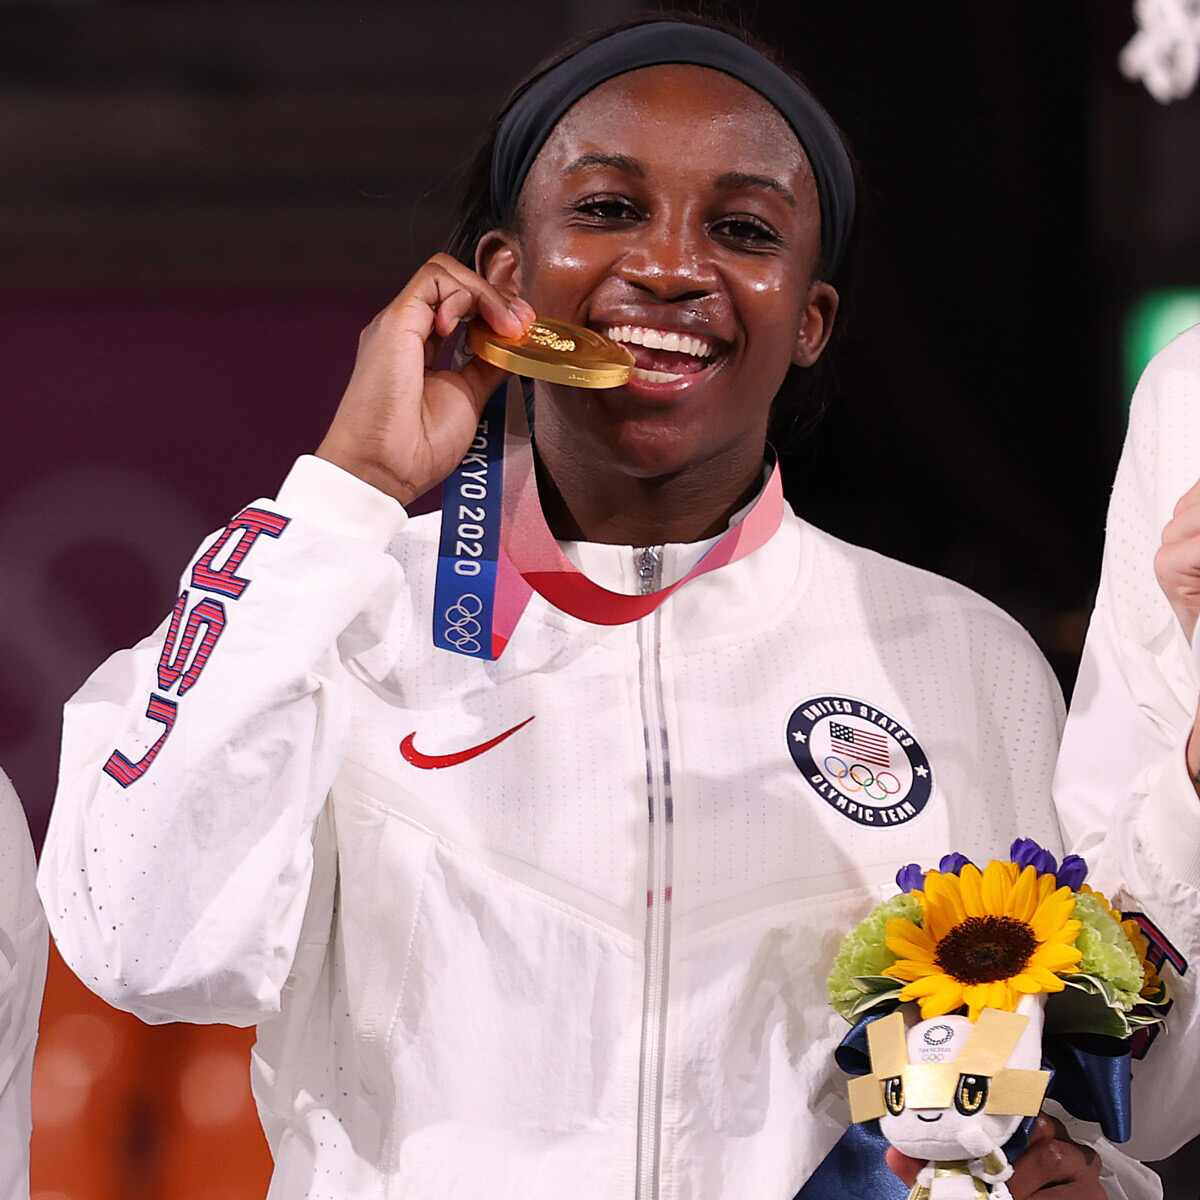 Jacquelyn Young, 2020 Tokyo Olympics